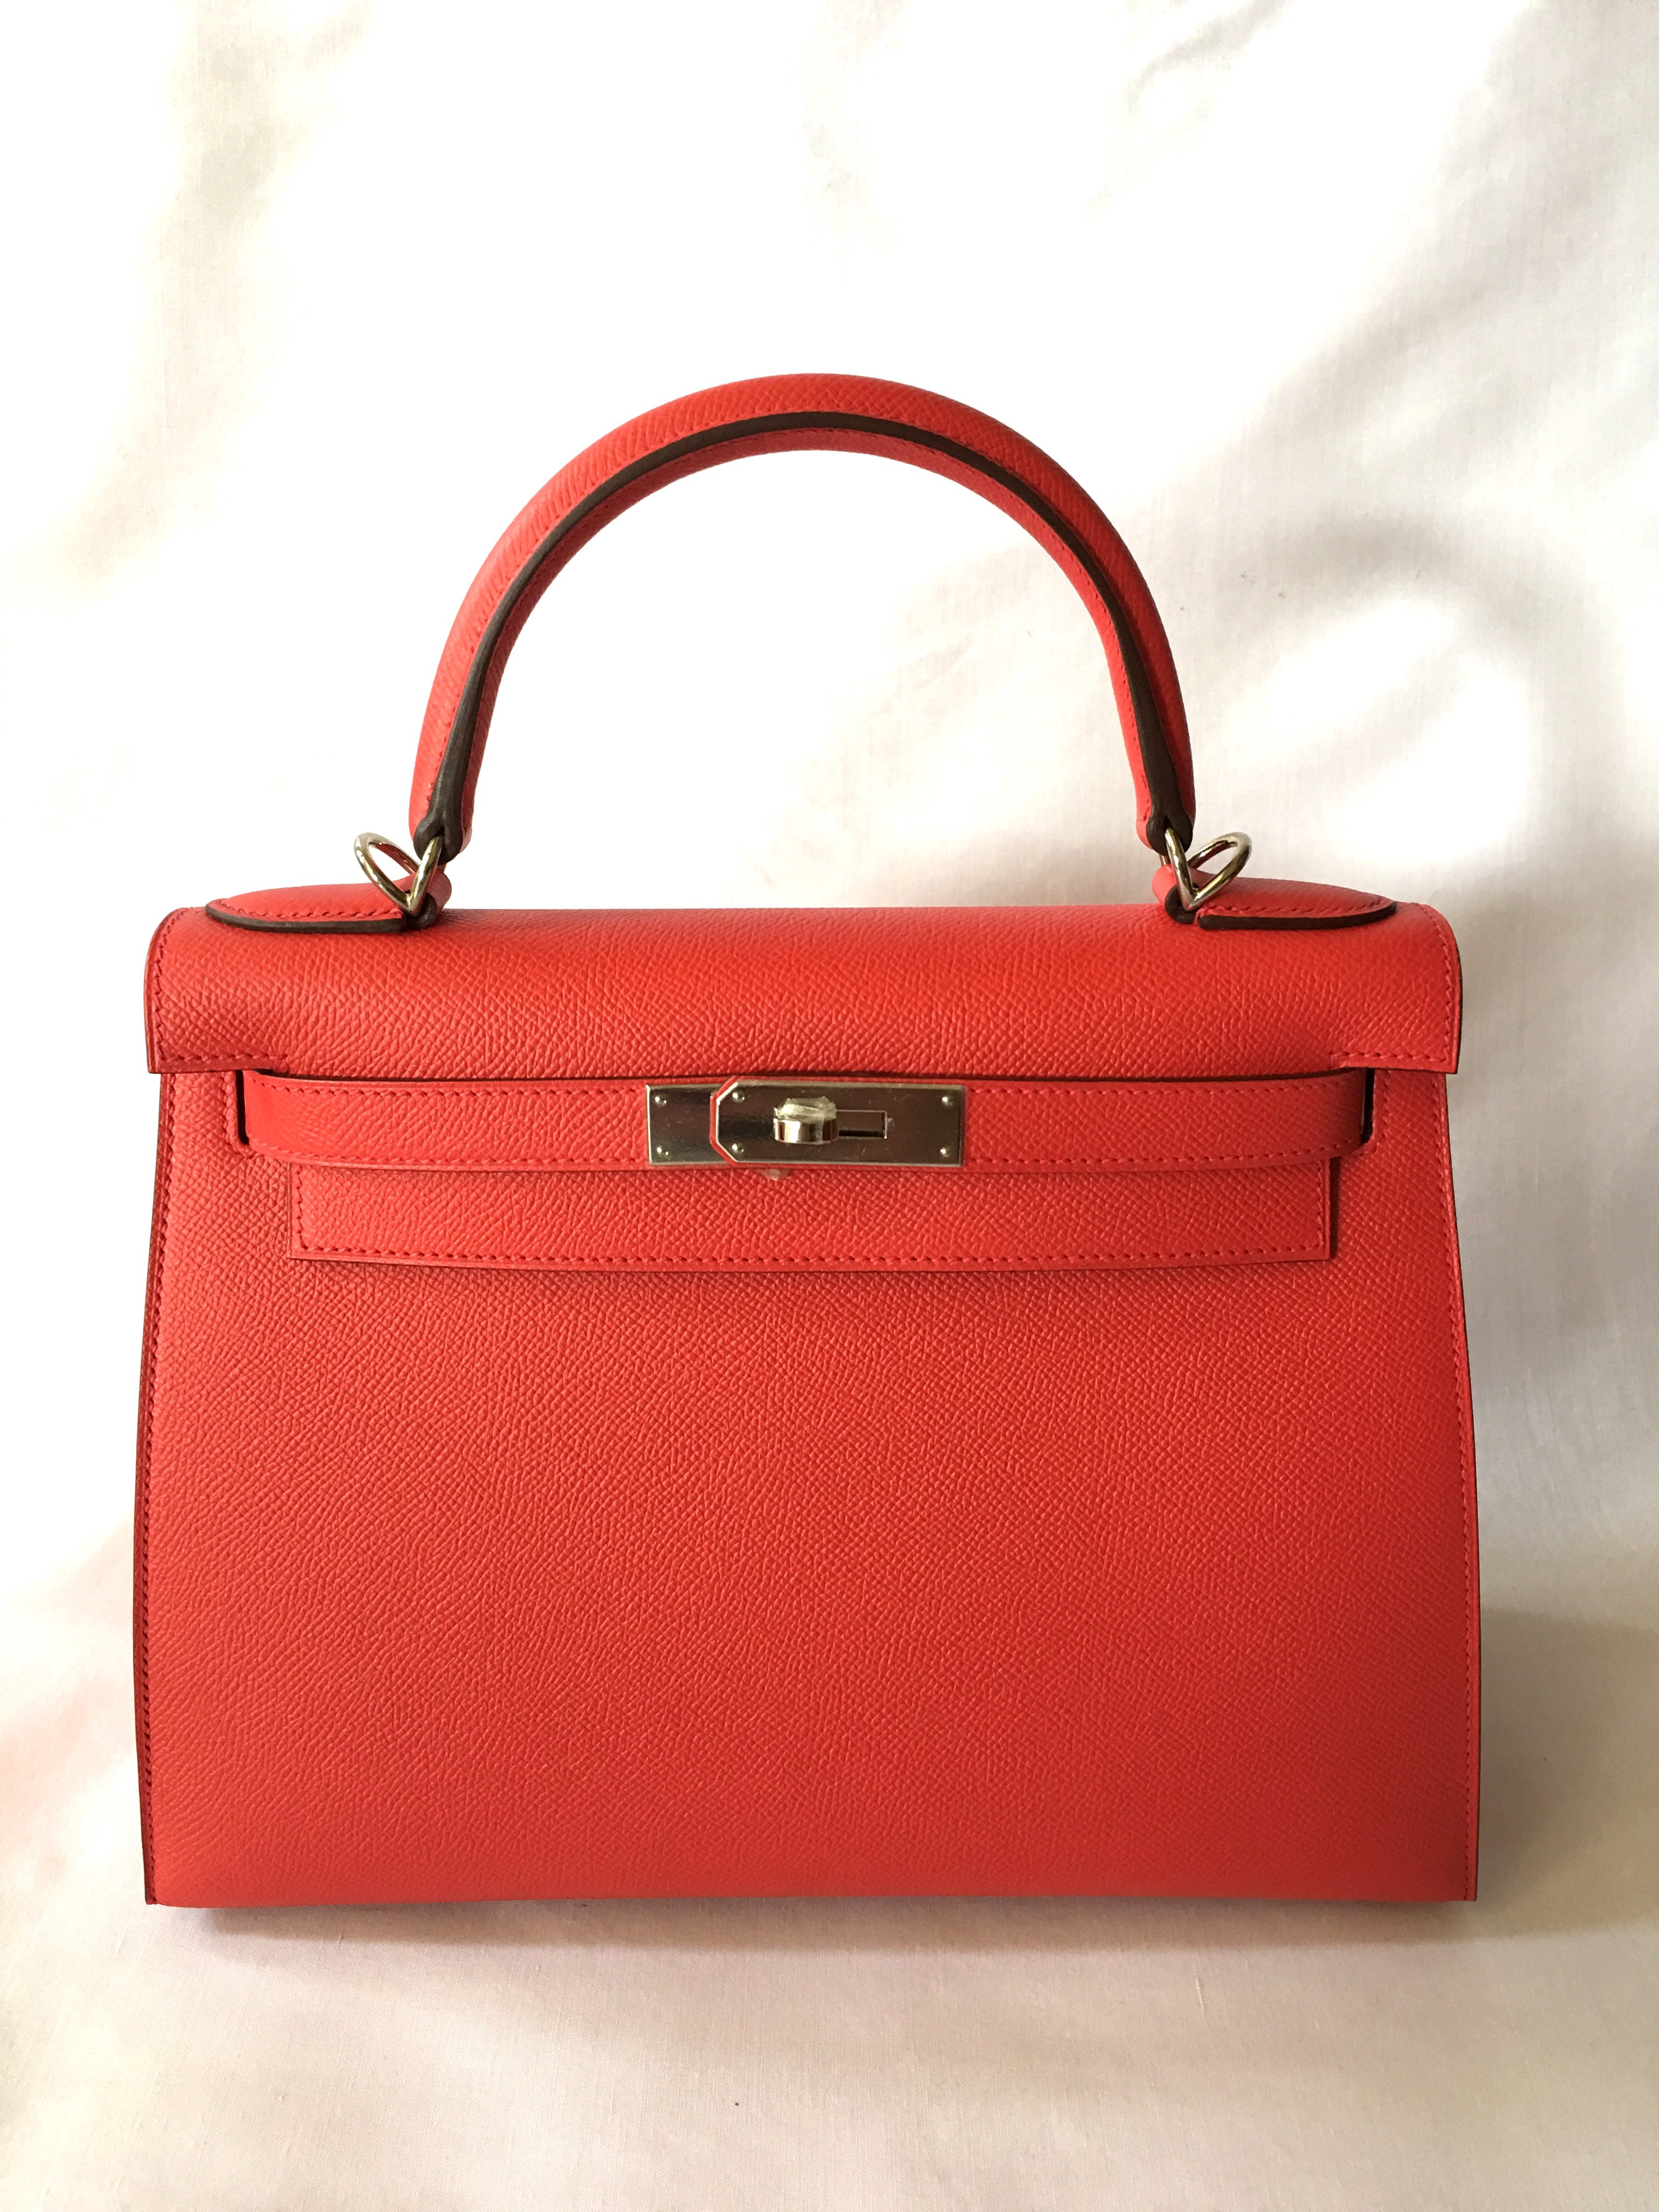 3adcff0014437 Hermes Kelly 28 Bougainvillier – Bags Blogger